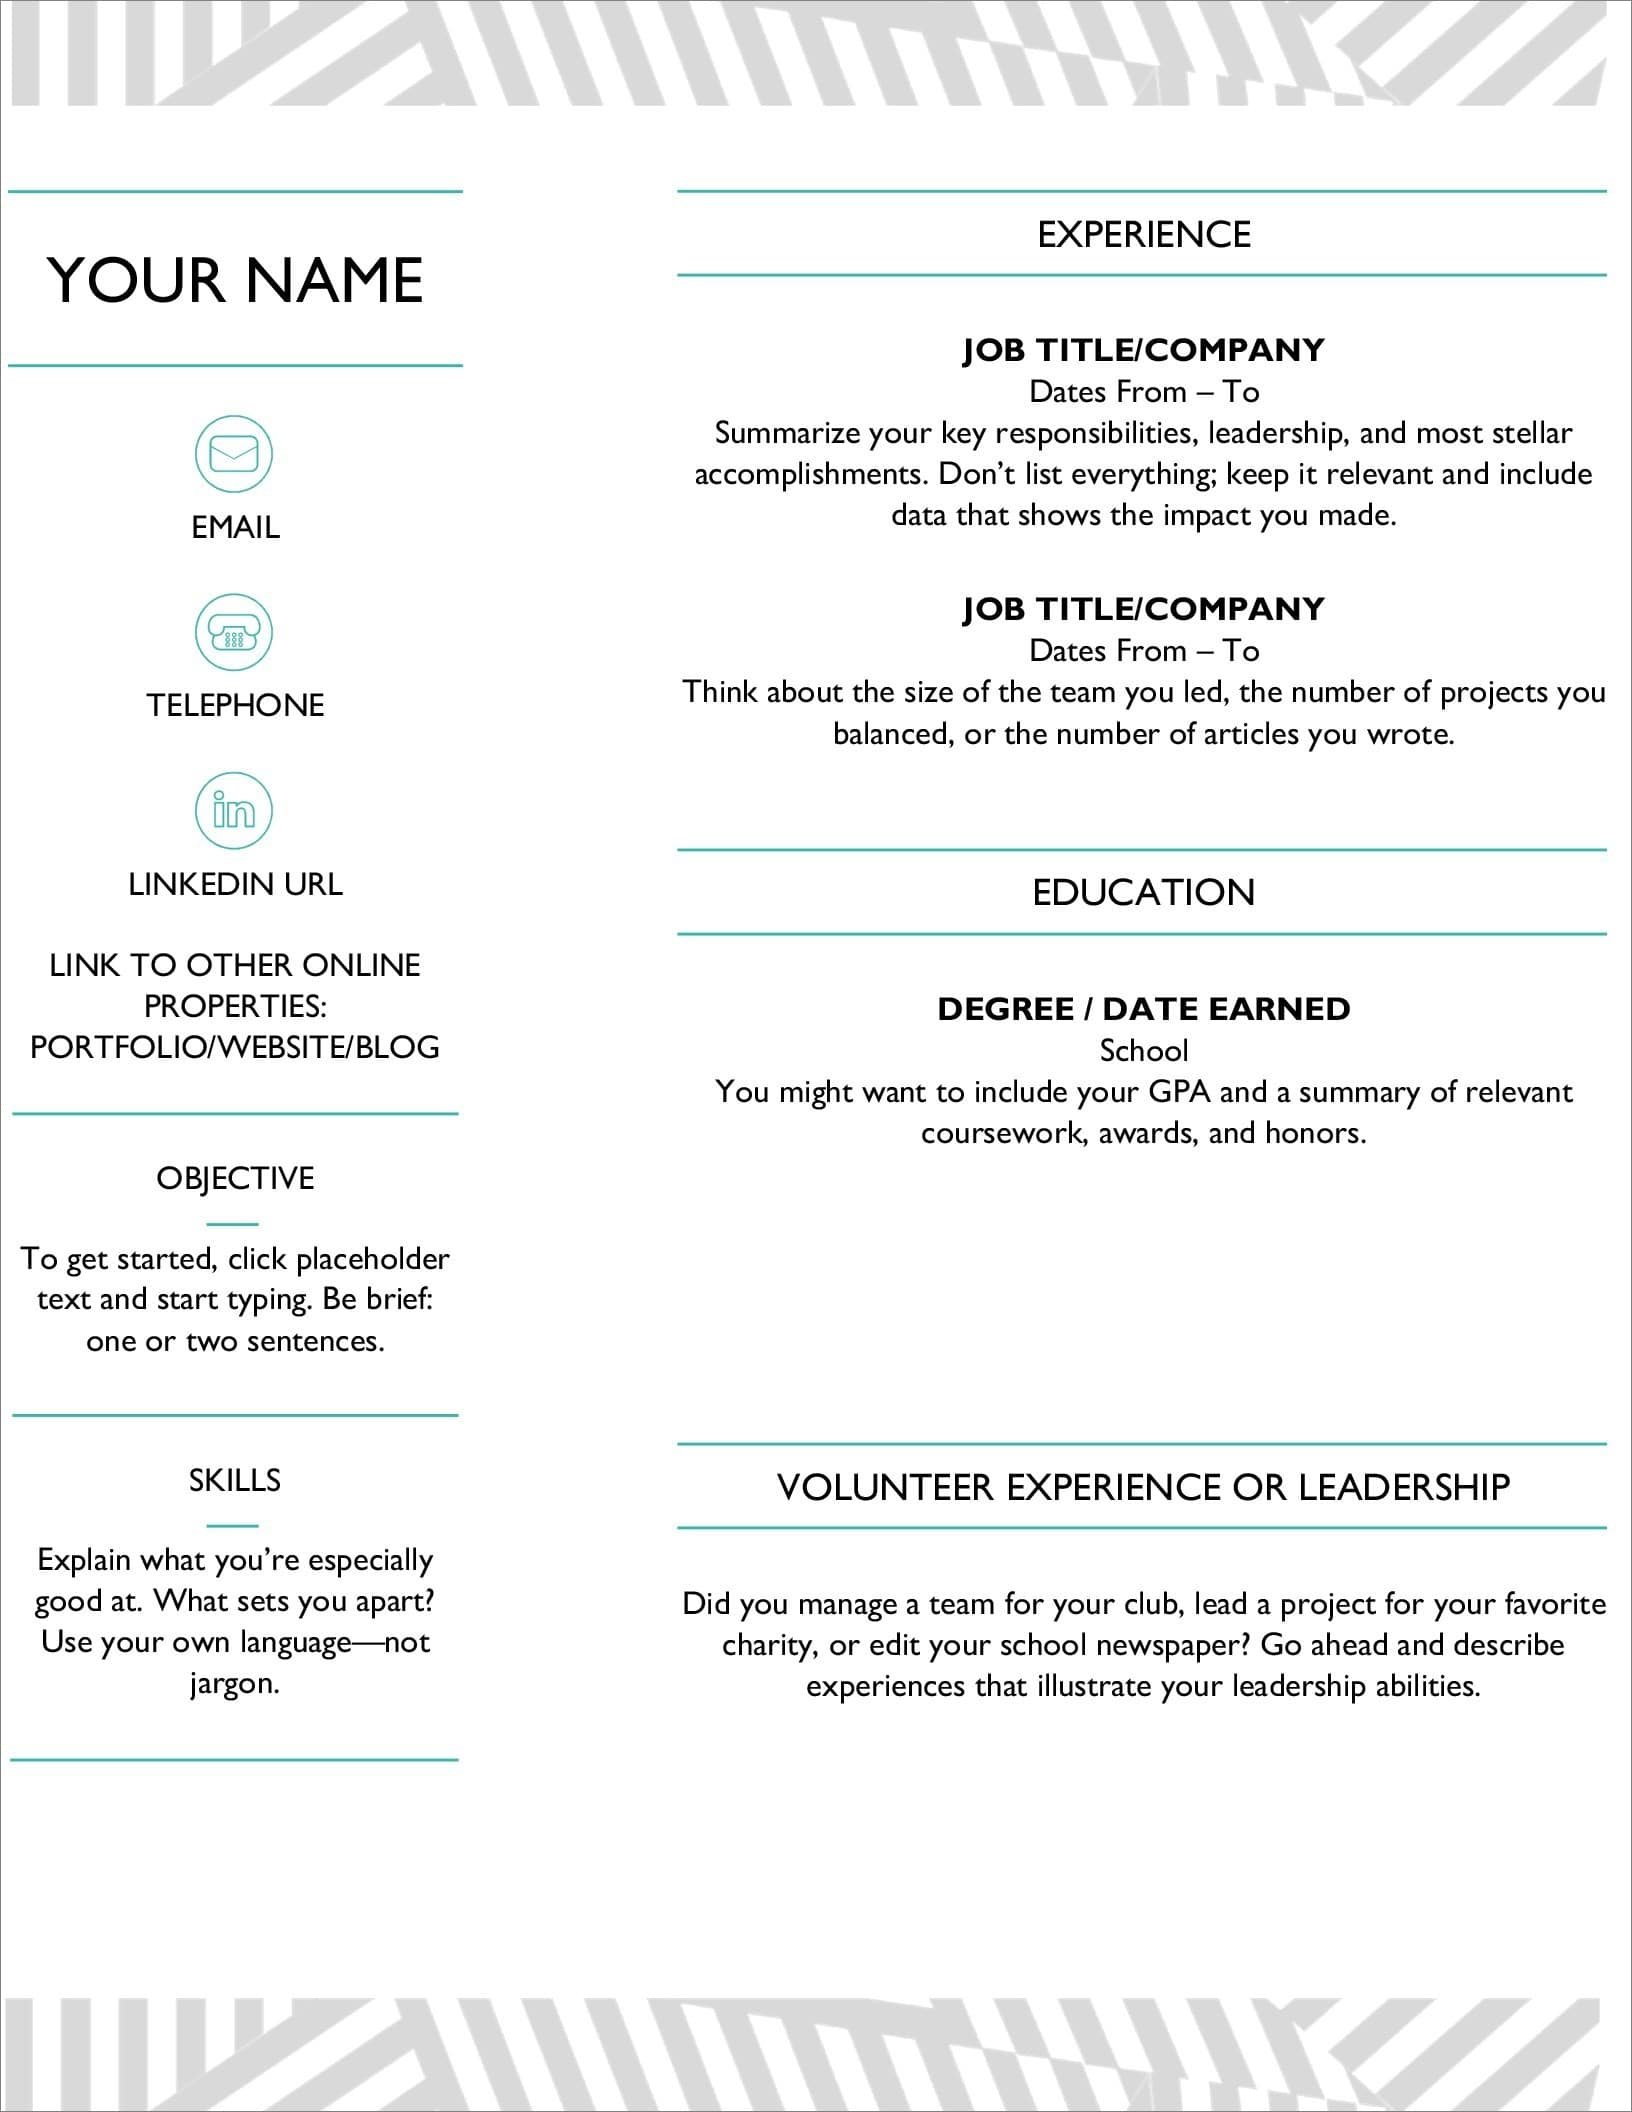 resume templates for microsoft word free ms word23 masters thesis operations manager Resume Free Microsoft Word Resume Templates 2020